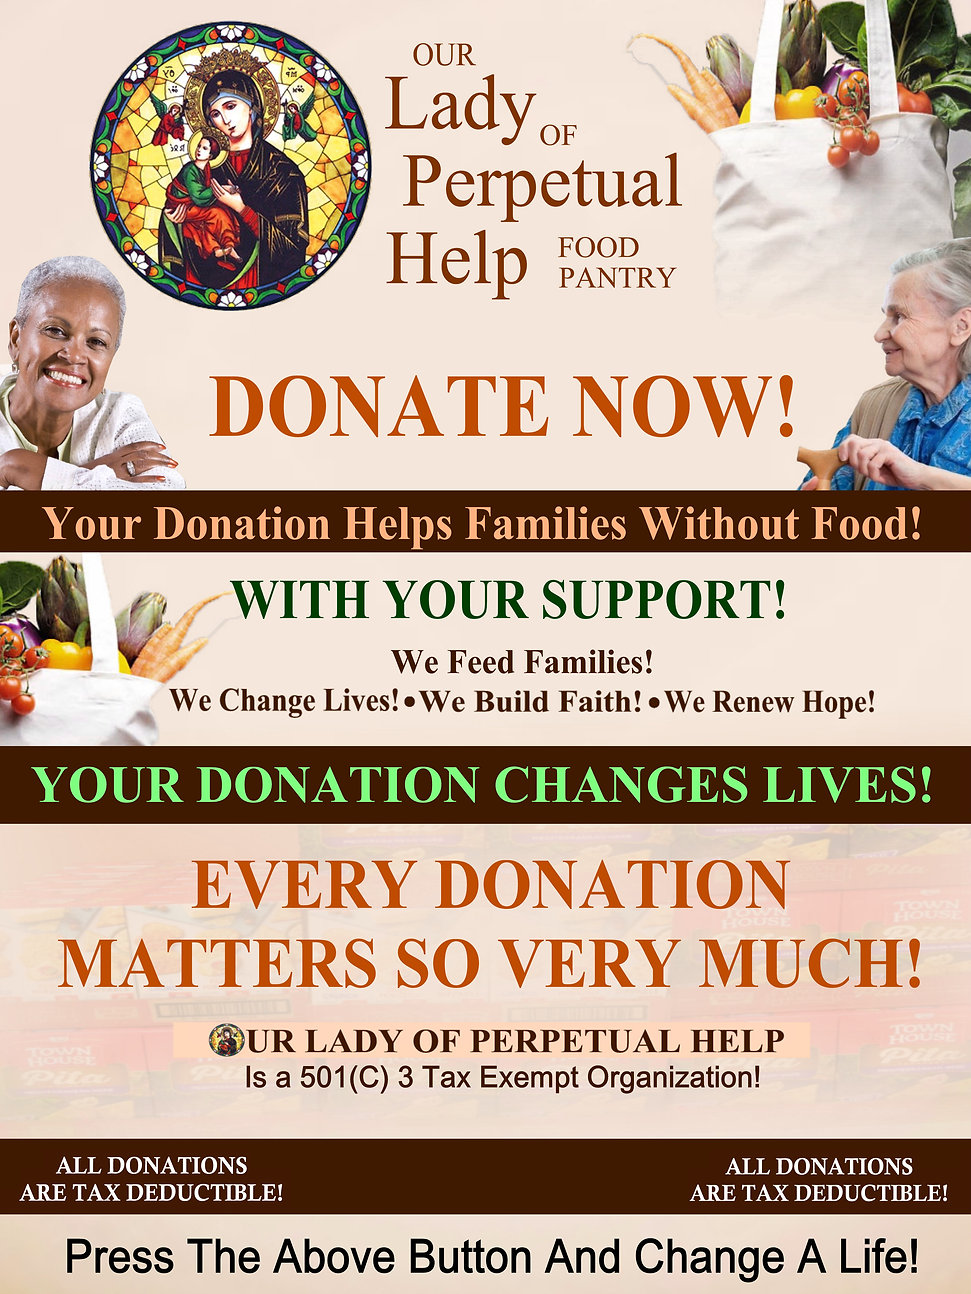 ( - 0 - 0 - 0 - OUR LADY DONATE PG.jpg